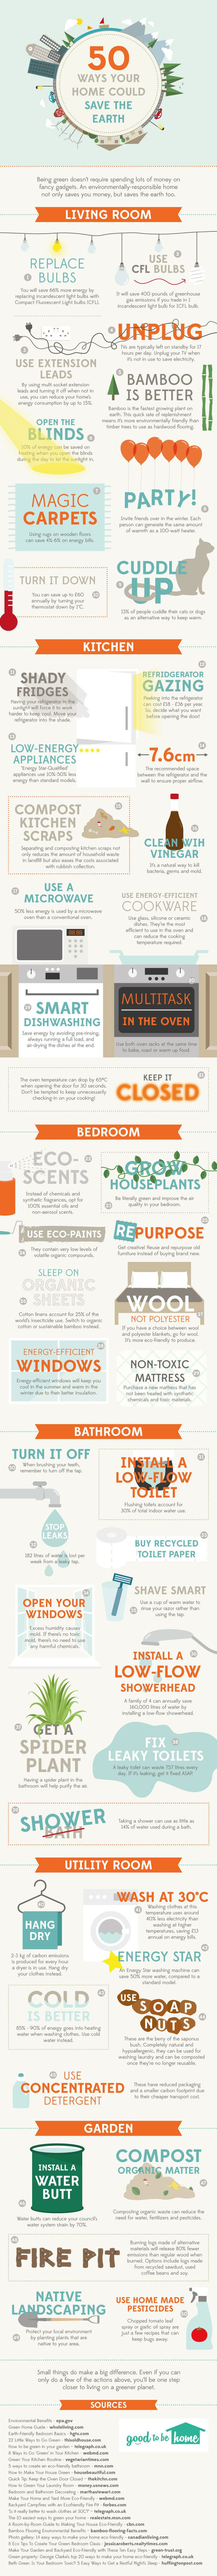 50 Ways Your Home Could Save The Earth: Apart from the suggestion to use the microwave for more cooking, these are excellent tips!